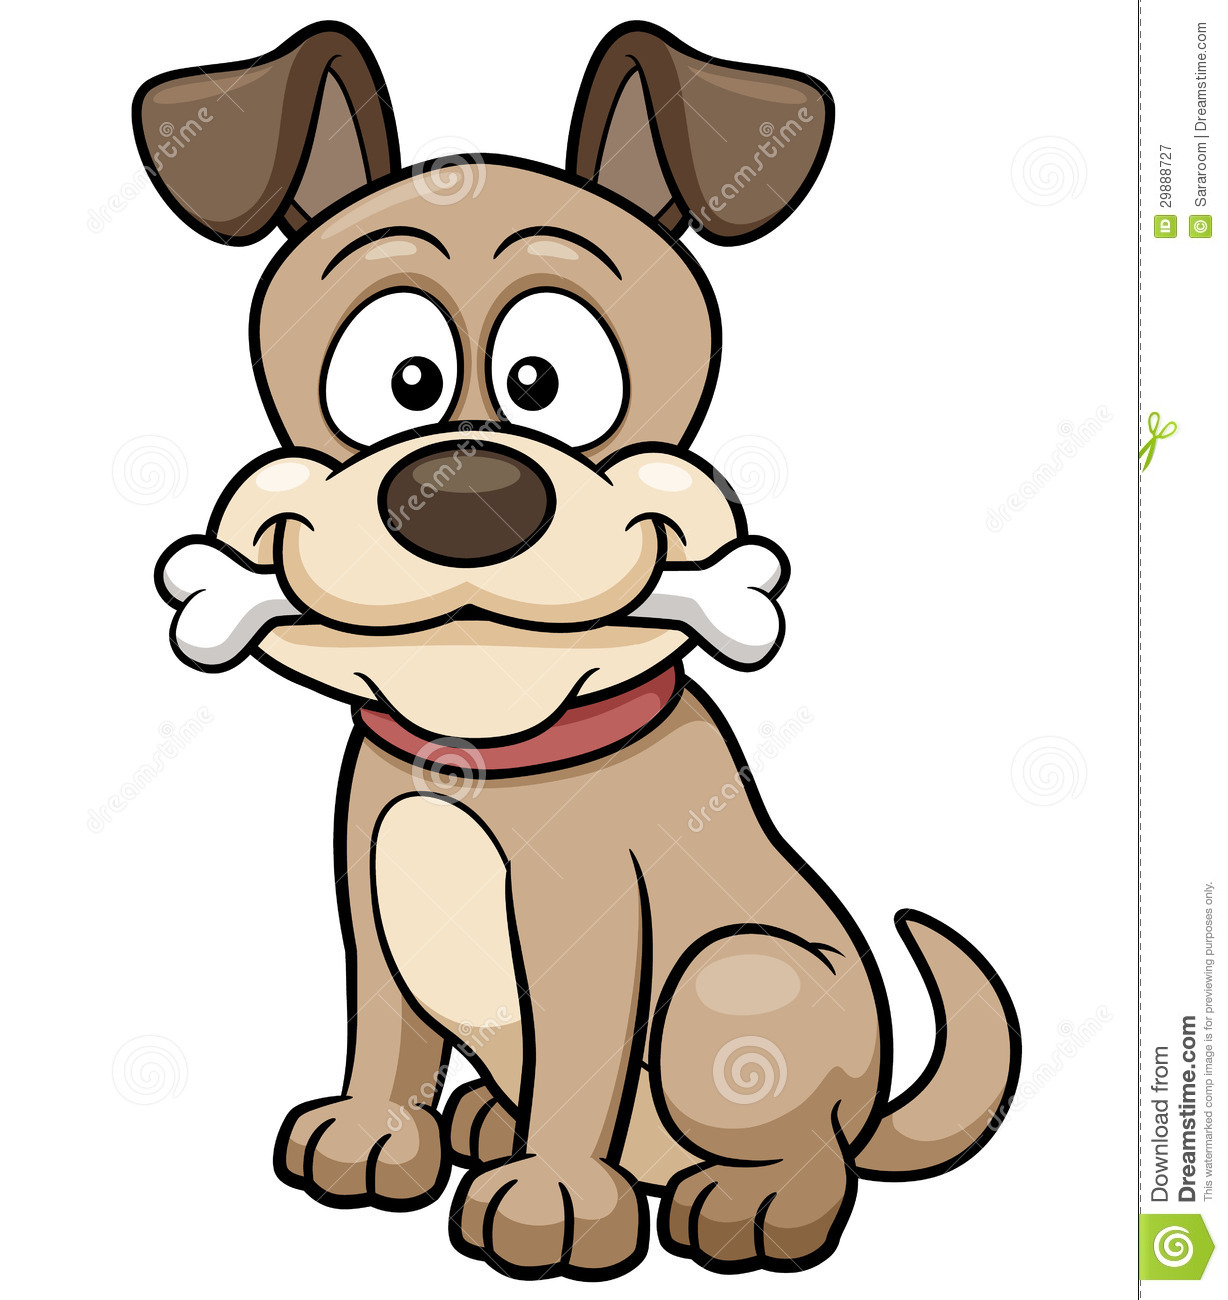 Image of: Vector Cartoon Dog Dreamstimecom Cartoon Dog Stock Vector Illustration Of Excited Pooch 29888727